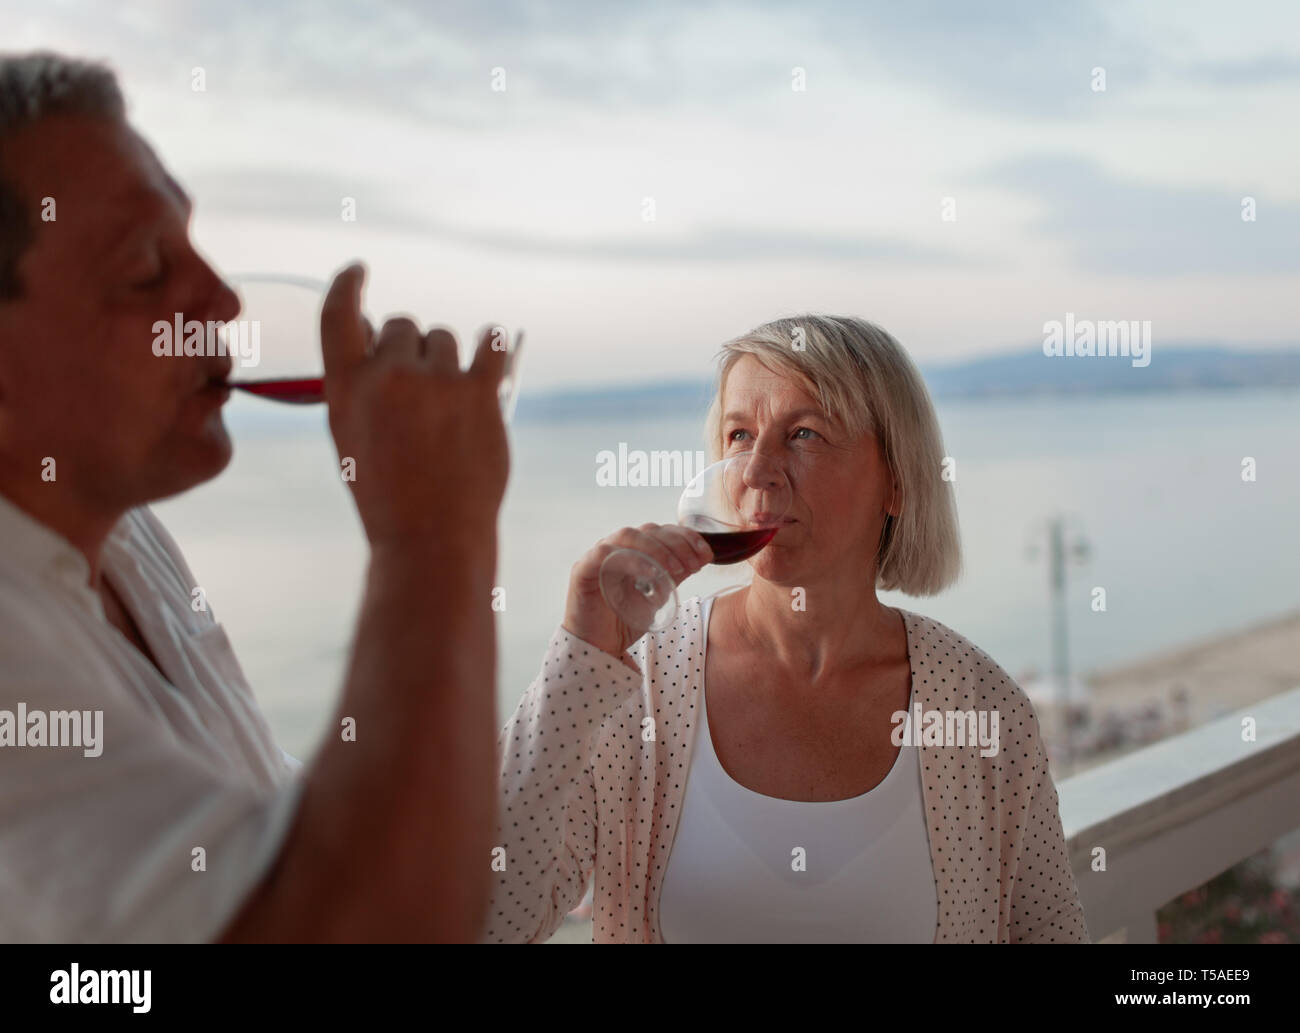 One more sip before sunset - Stock Image